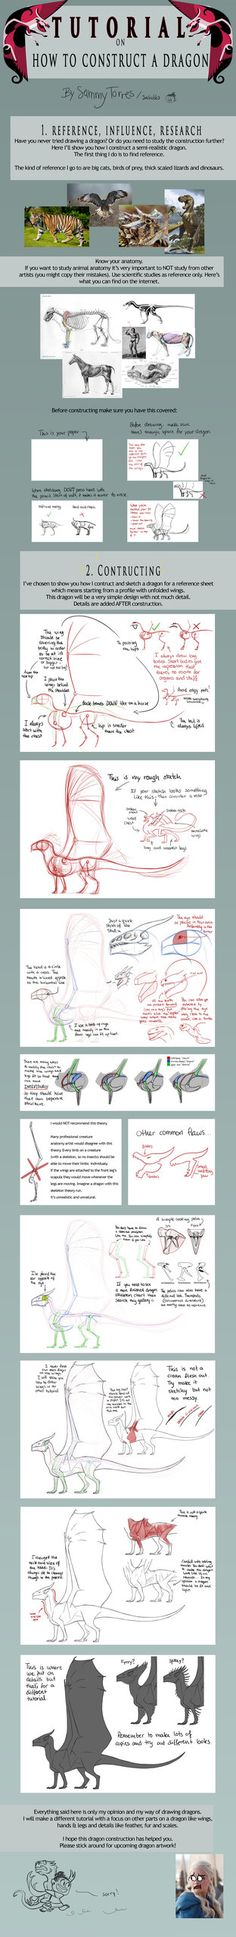 TADAA!!!Part 2 of my dragon tutorials. If you missed part 1 then follow this link: sabubba.deviantart.com/art/TUT… Upcoming is my tutorial on WINGS for DRAGONS so stick around for that (^_^)...